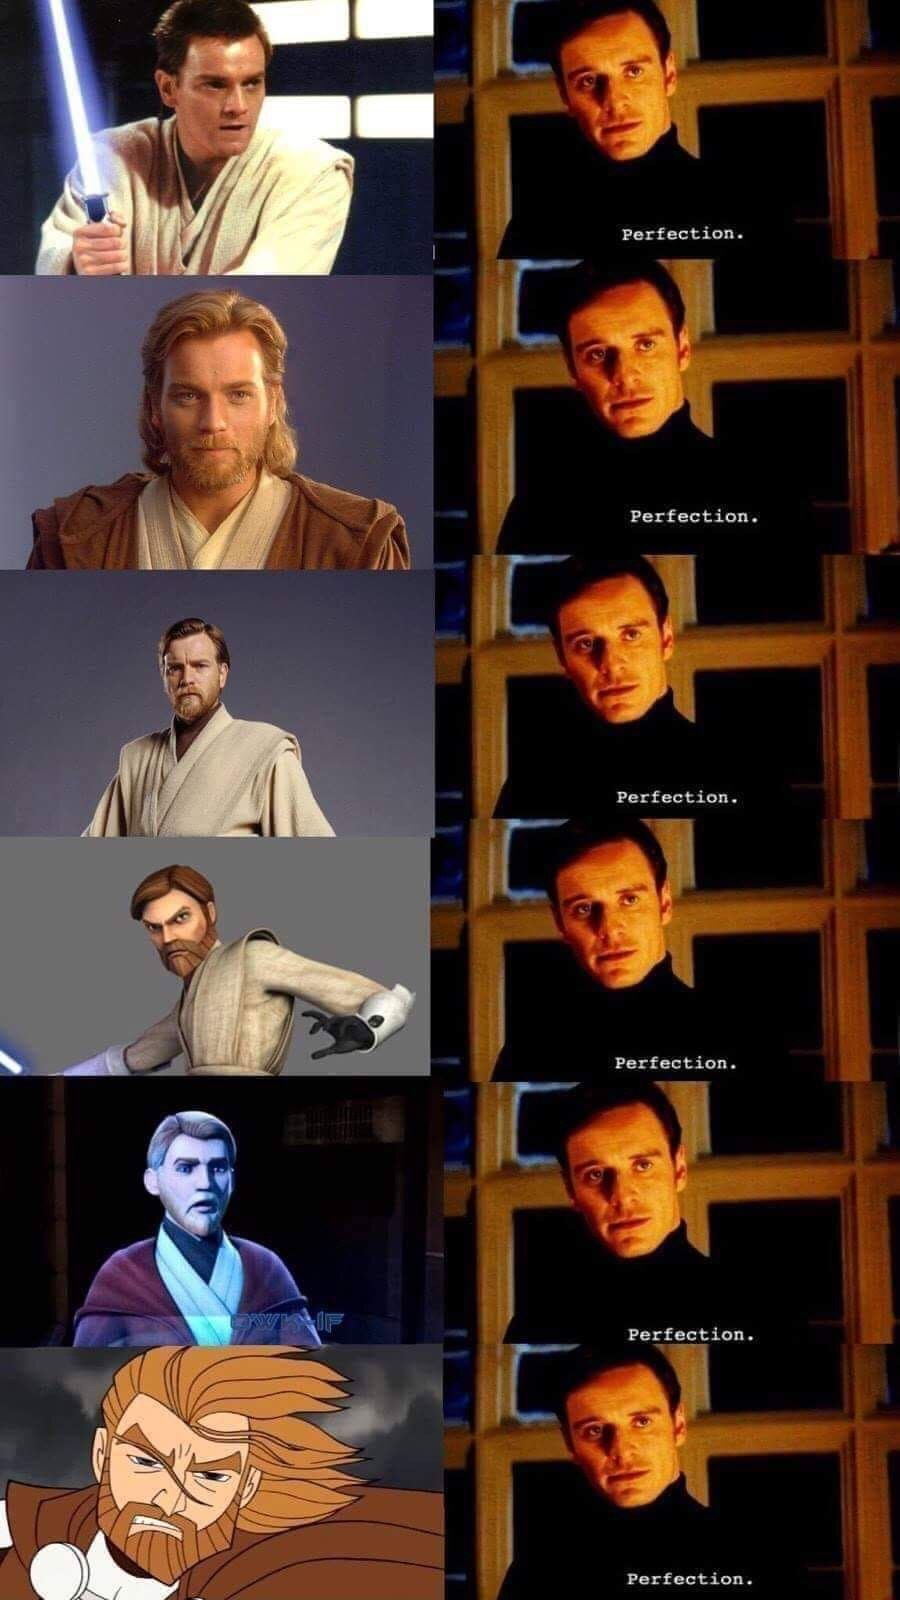 58 Star Wars Episode Ix Memes And Many More Star Wars Episodes Star Wars Jokes Star Wars Humor